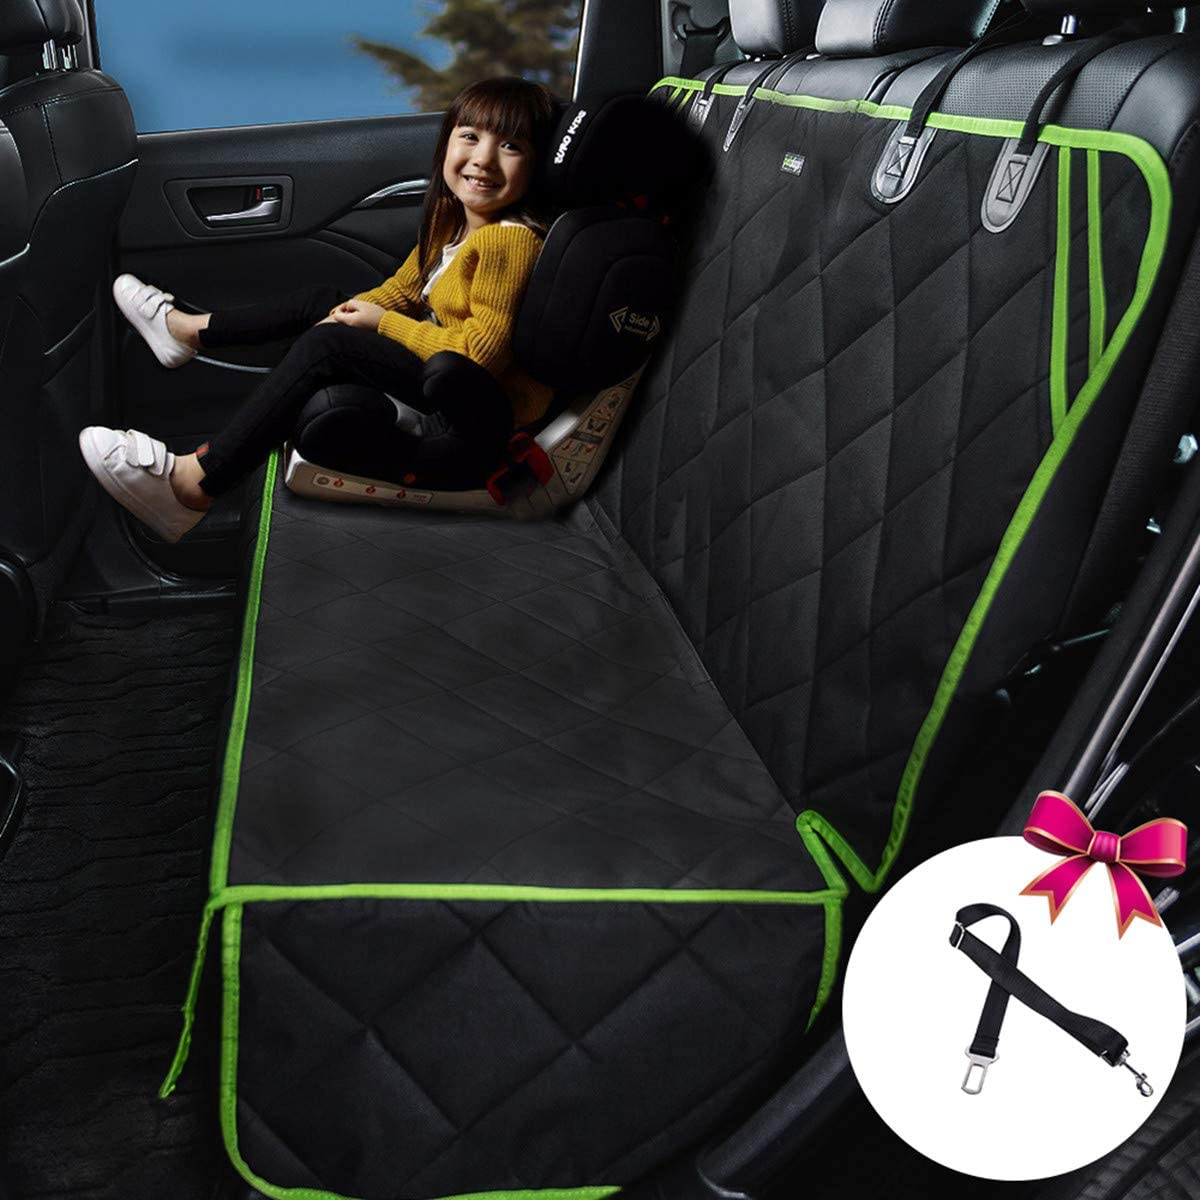 petalage Bench Car Seat Cover Protector – Waterproof, Heavy-Duty and Nonslip Pet Car Seat Cover for Dogs with Universal Size Fits for Cars, Trucks SUV Green Edge